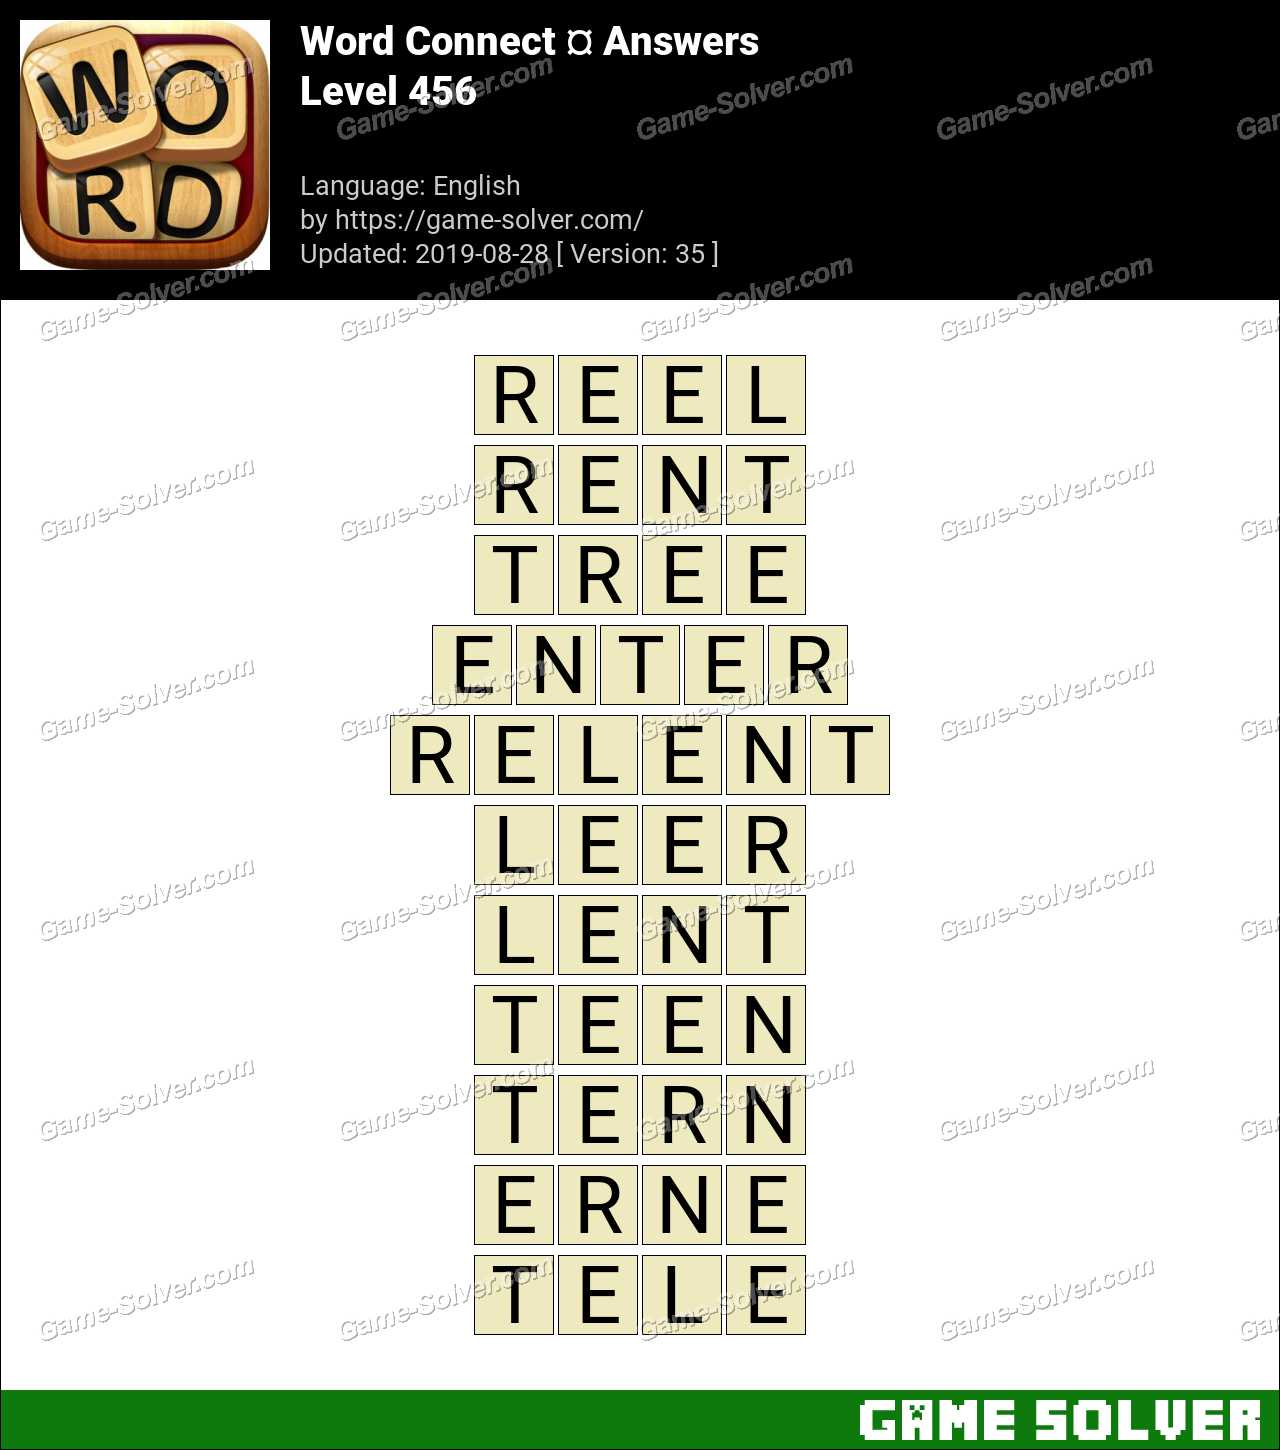 Word Connect Level 456 Answers